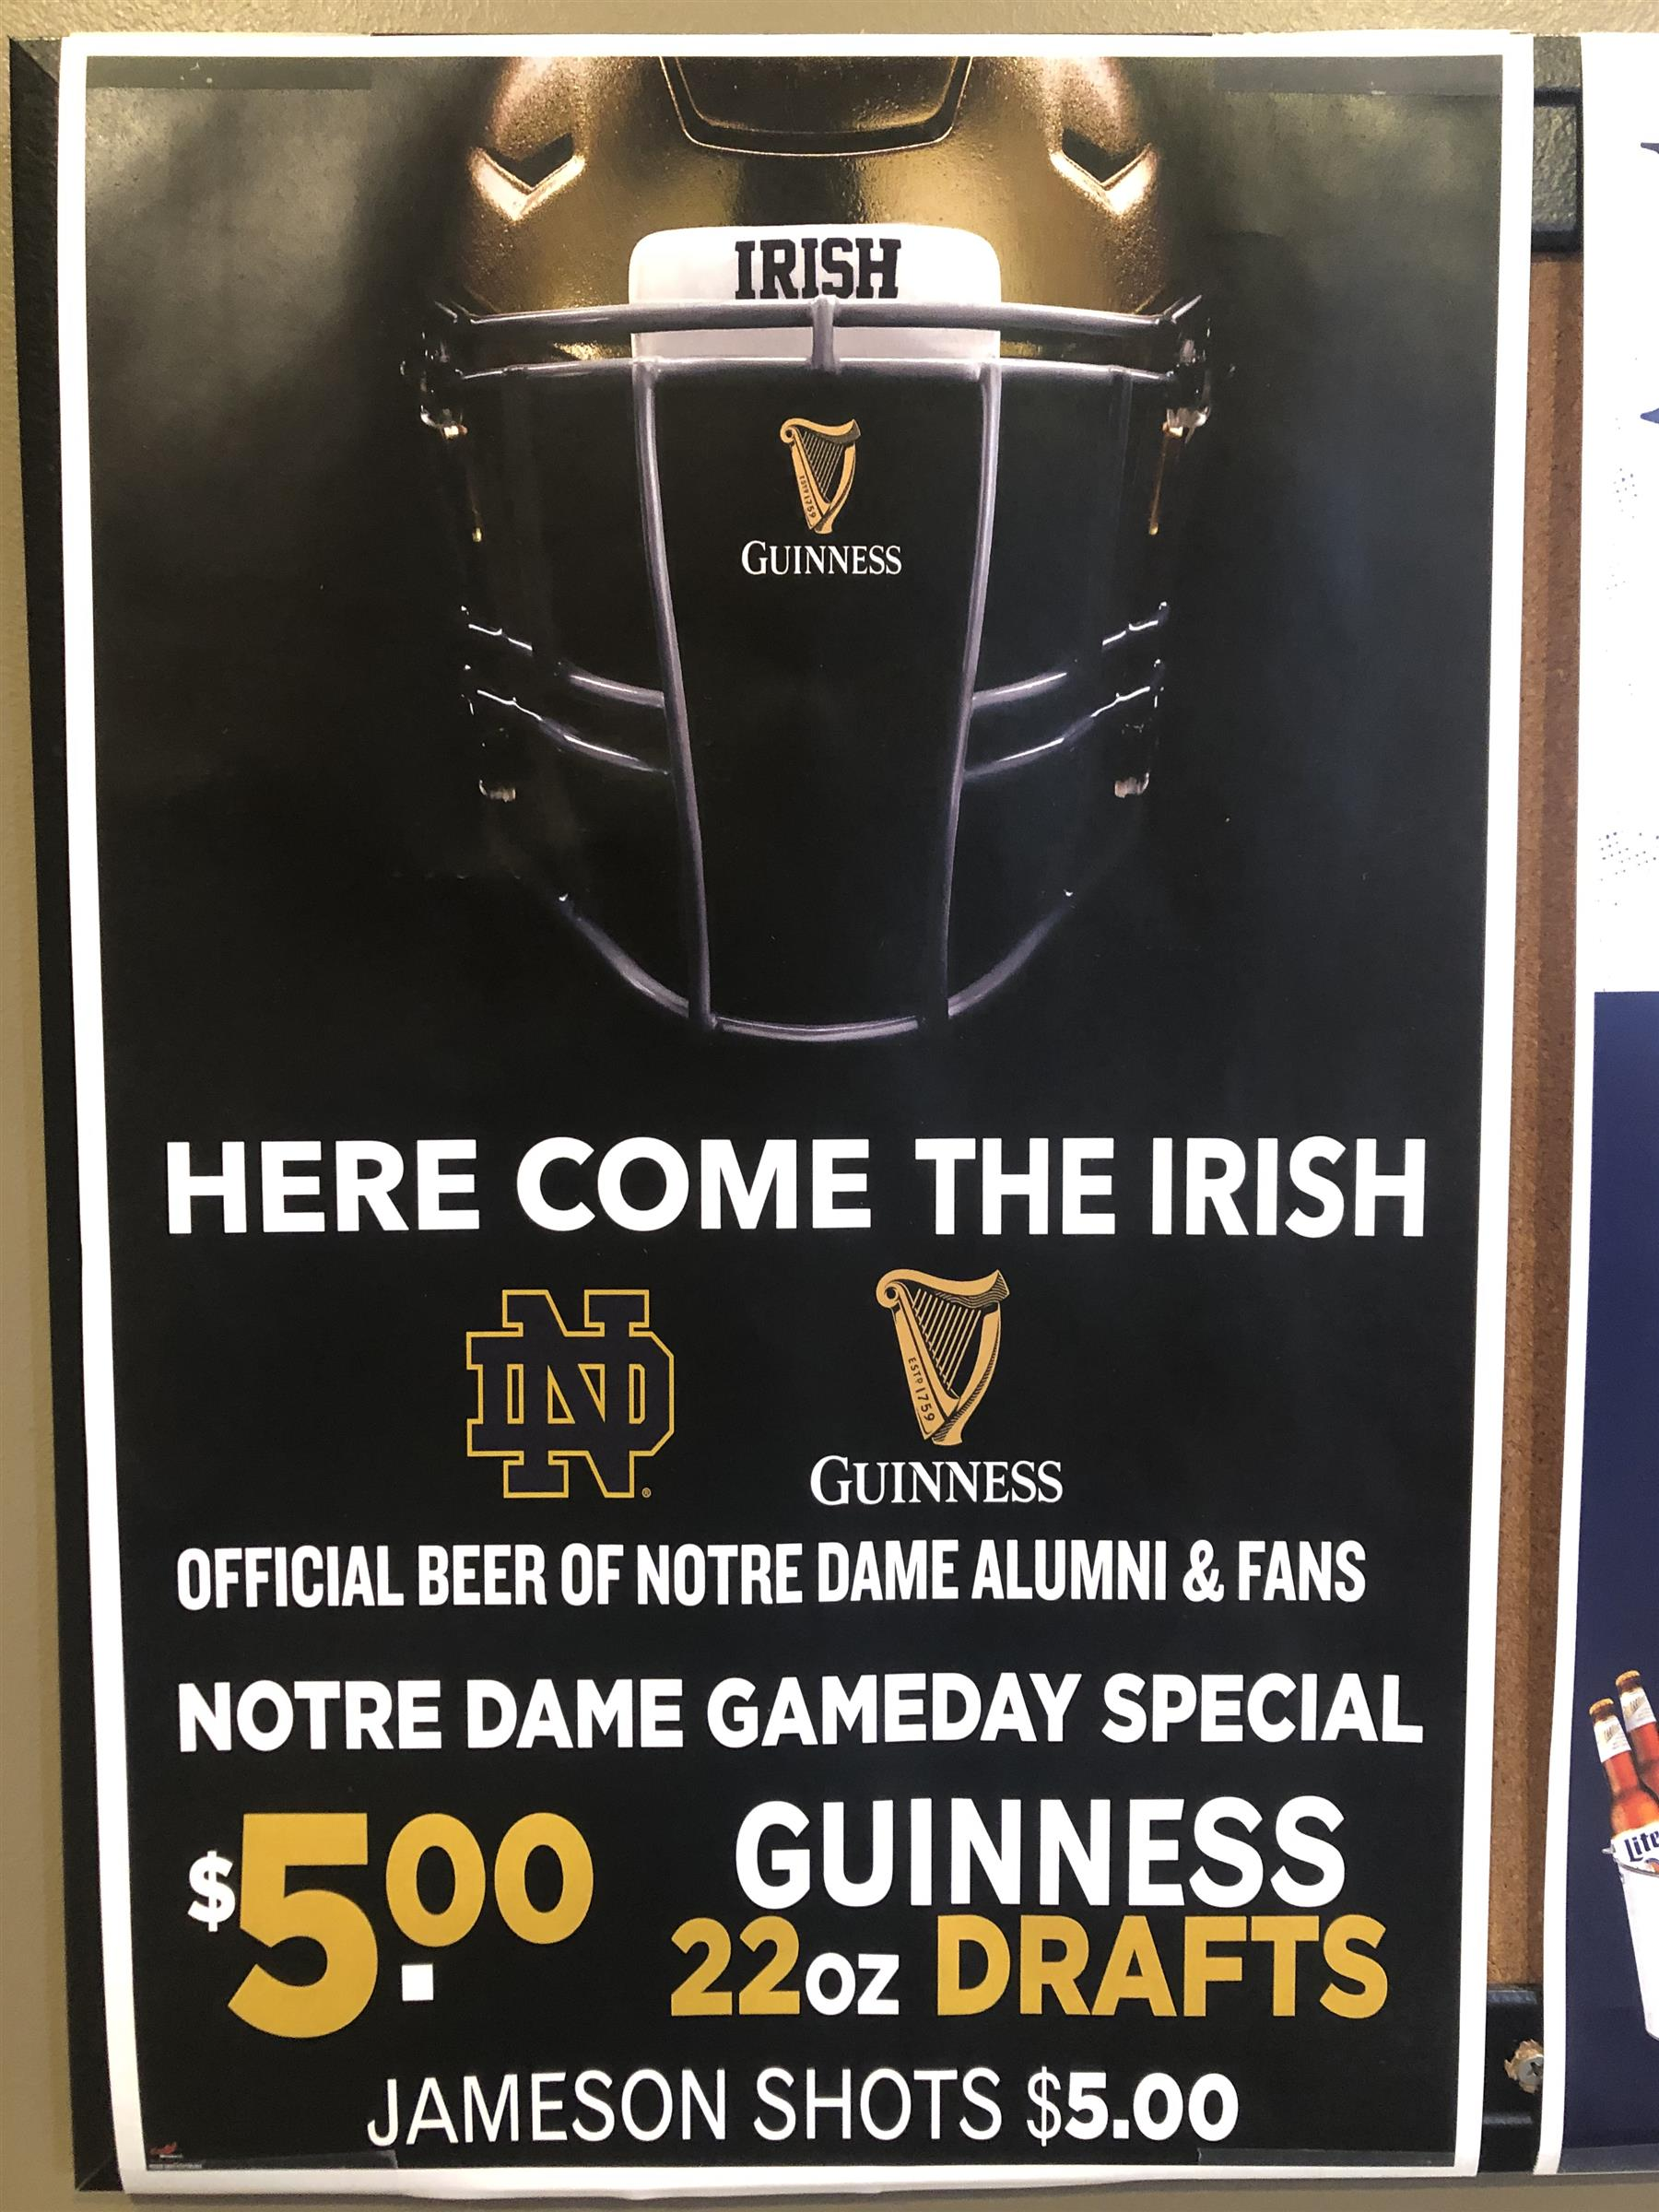 notre dame gameday special $5 guinness 220z drafts jameson shots $5